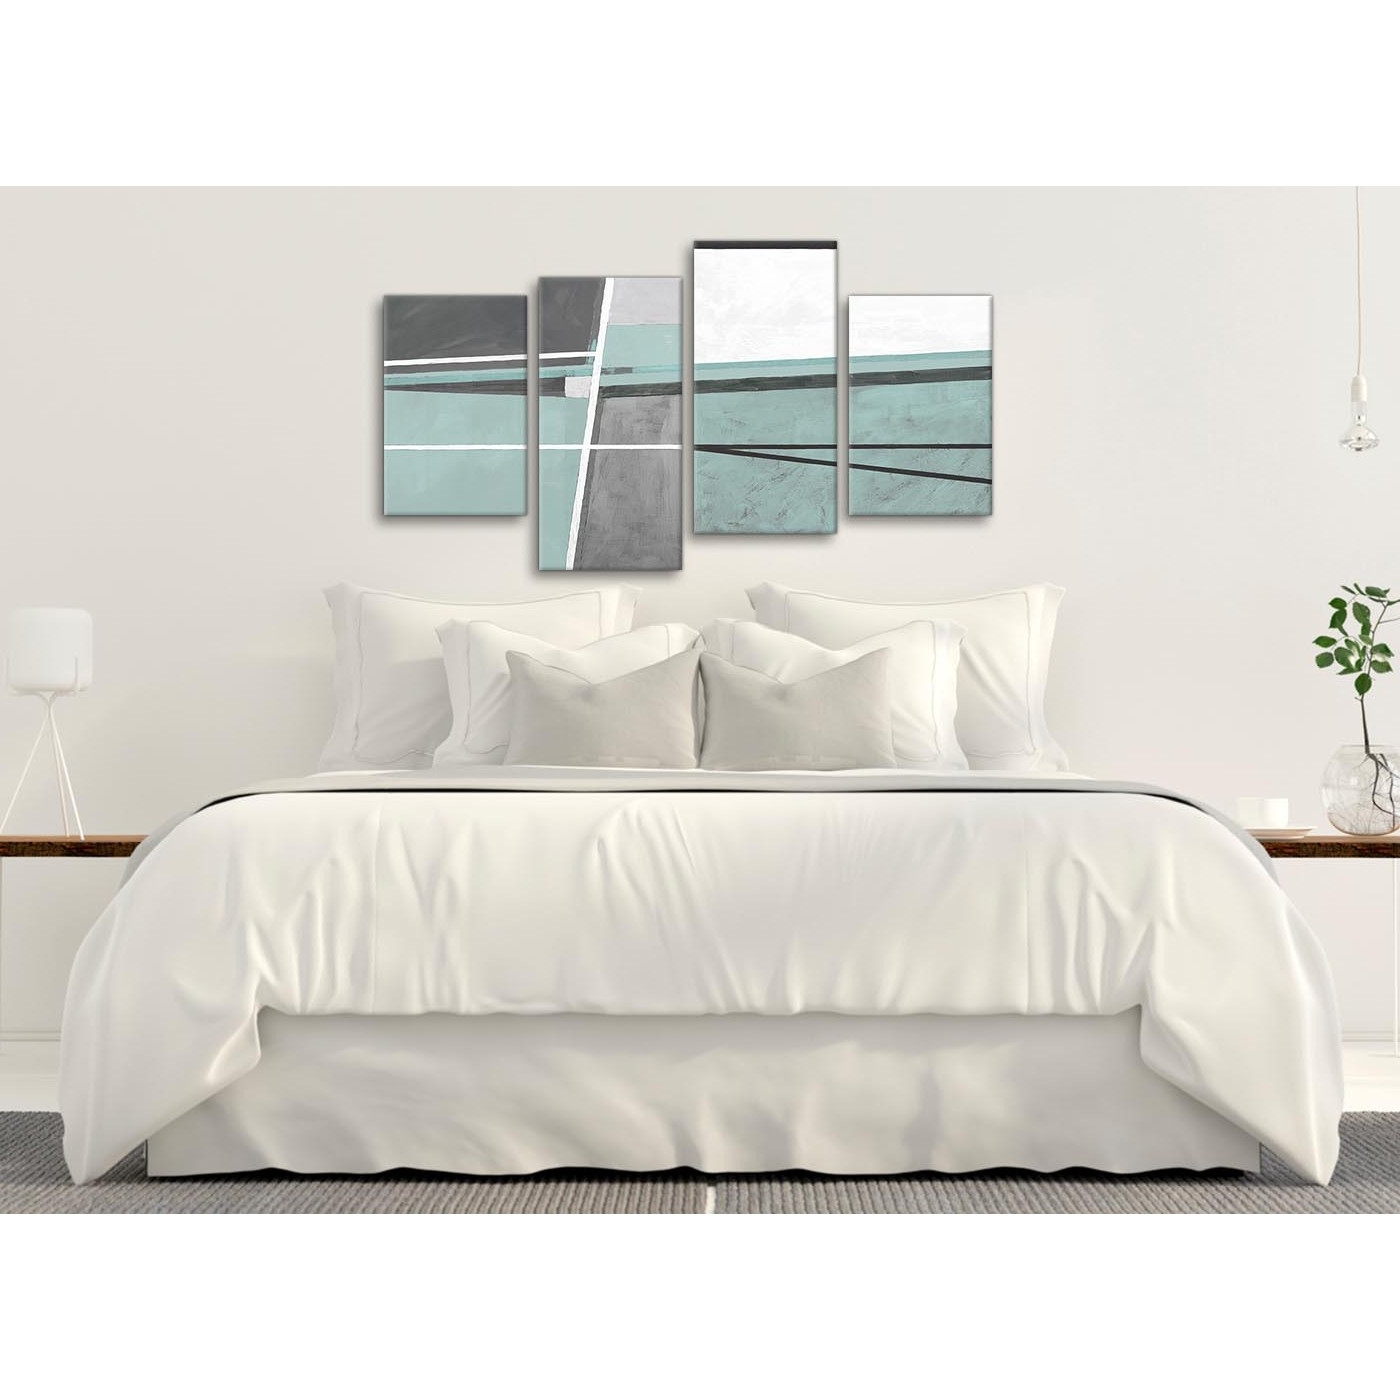 Favorite Large Duck Egg Blue Grey Painting Abstract Bedroom Canvas Pictures With Regard To Duck Egg Canvas Wall Art (View 9 of 15)